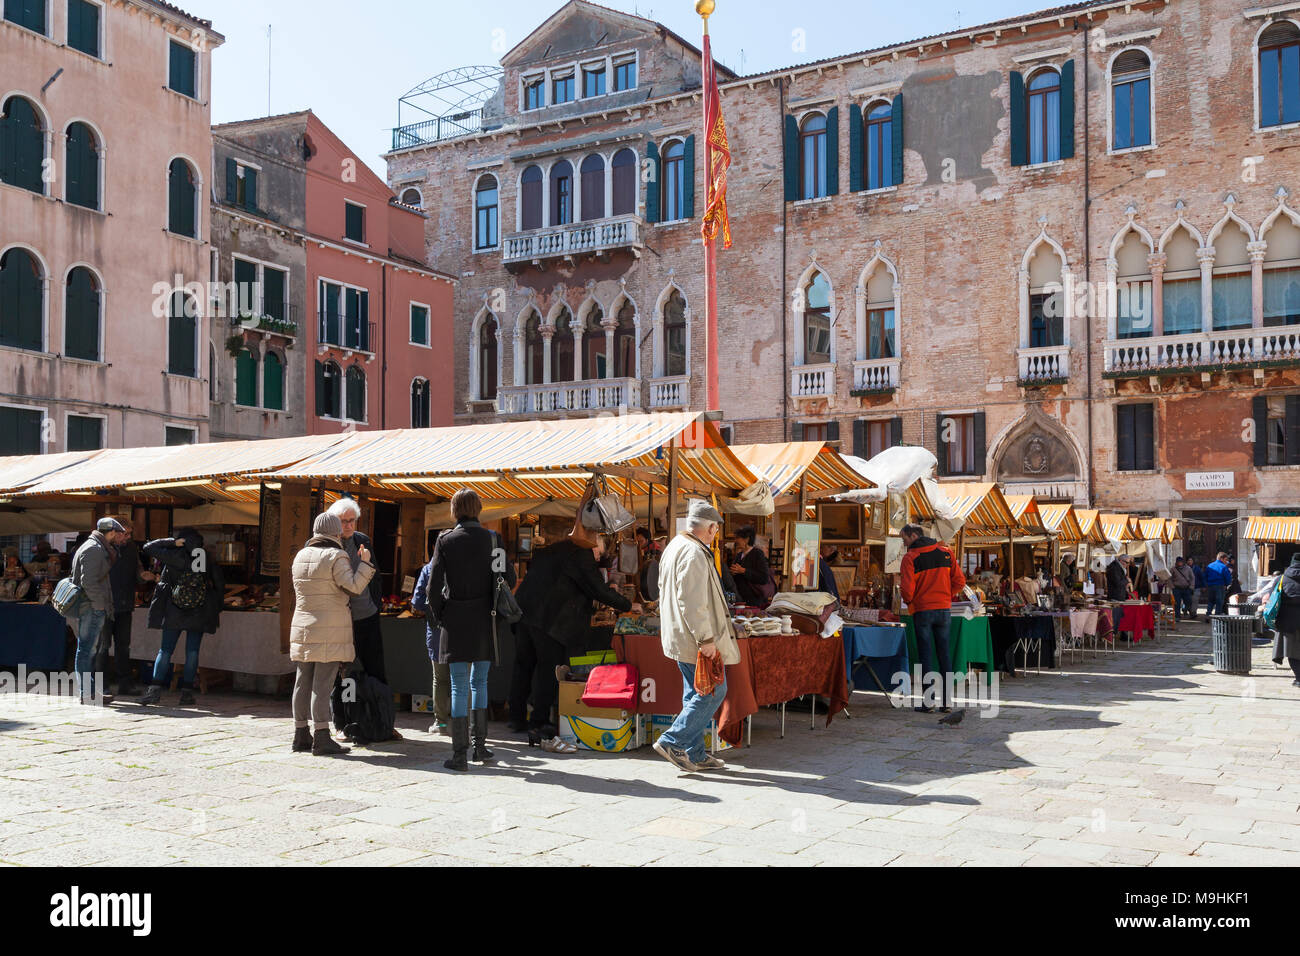 Shoppers searching for antiques on the antique market in Campo San Maurizio, San Marco, Venice, Italy, a popular event held five times a year - Stock Image